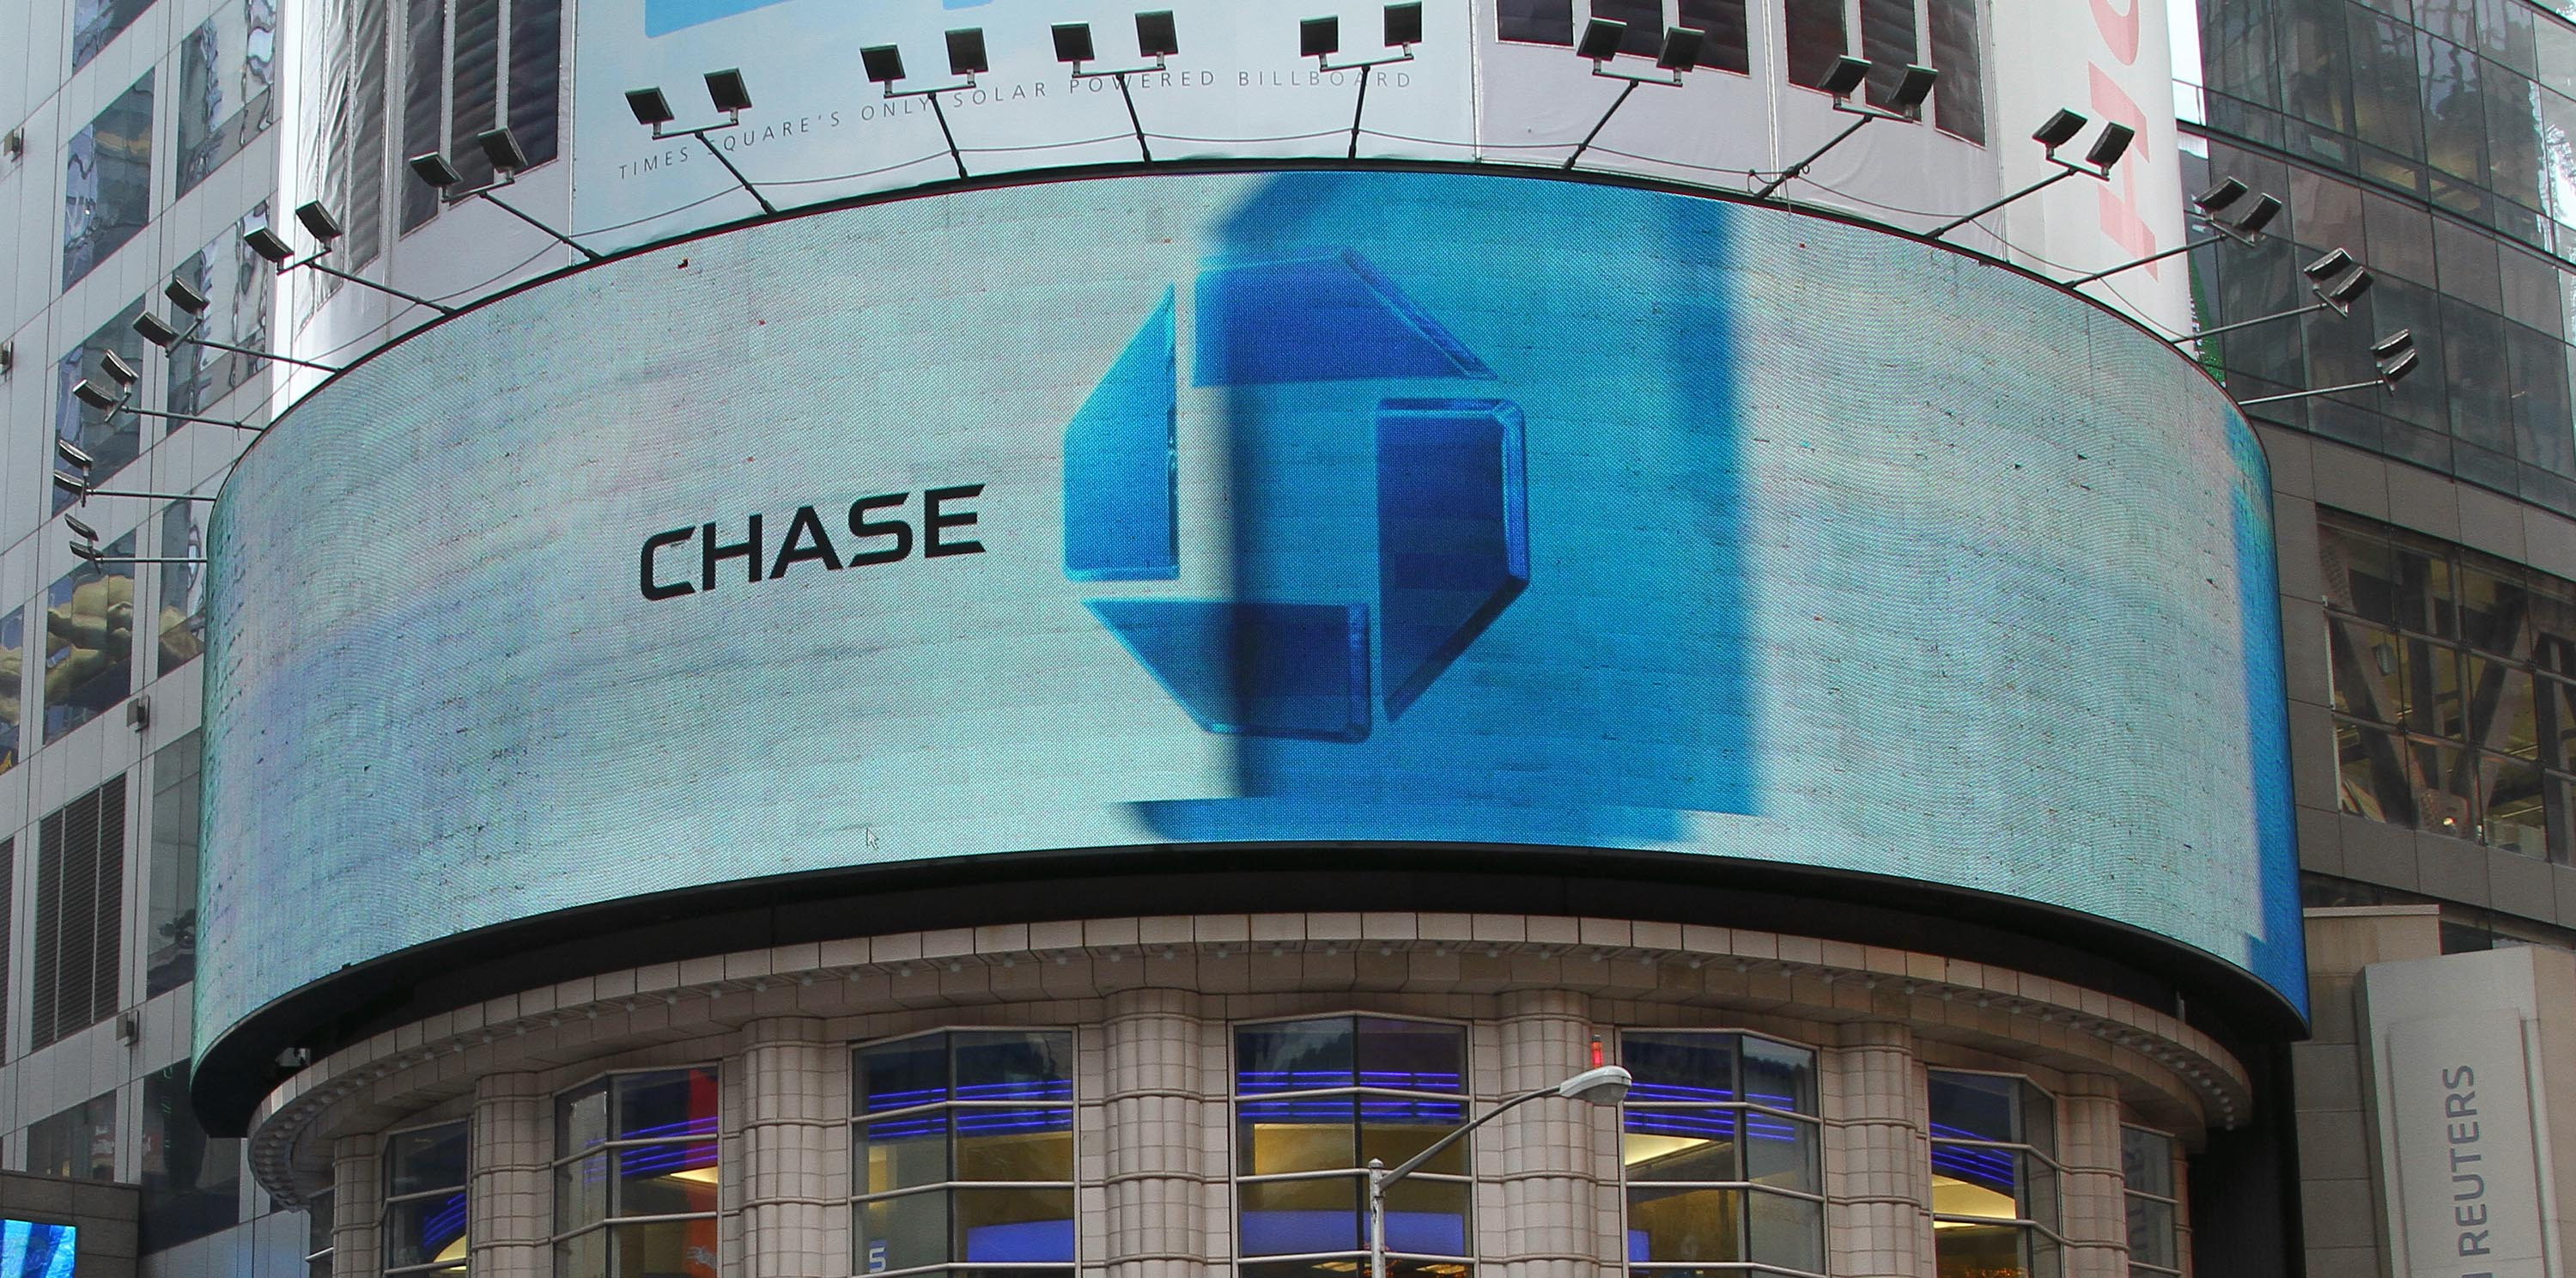 chase bank in times square i took a similar photo ofpnc bank hours what time does pnc bank close openare banks open thanksgiving day - Chase Bank Open Christmas Eve